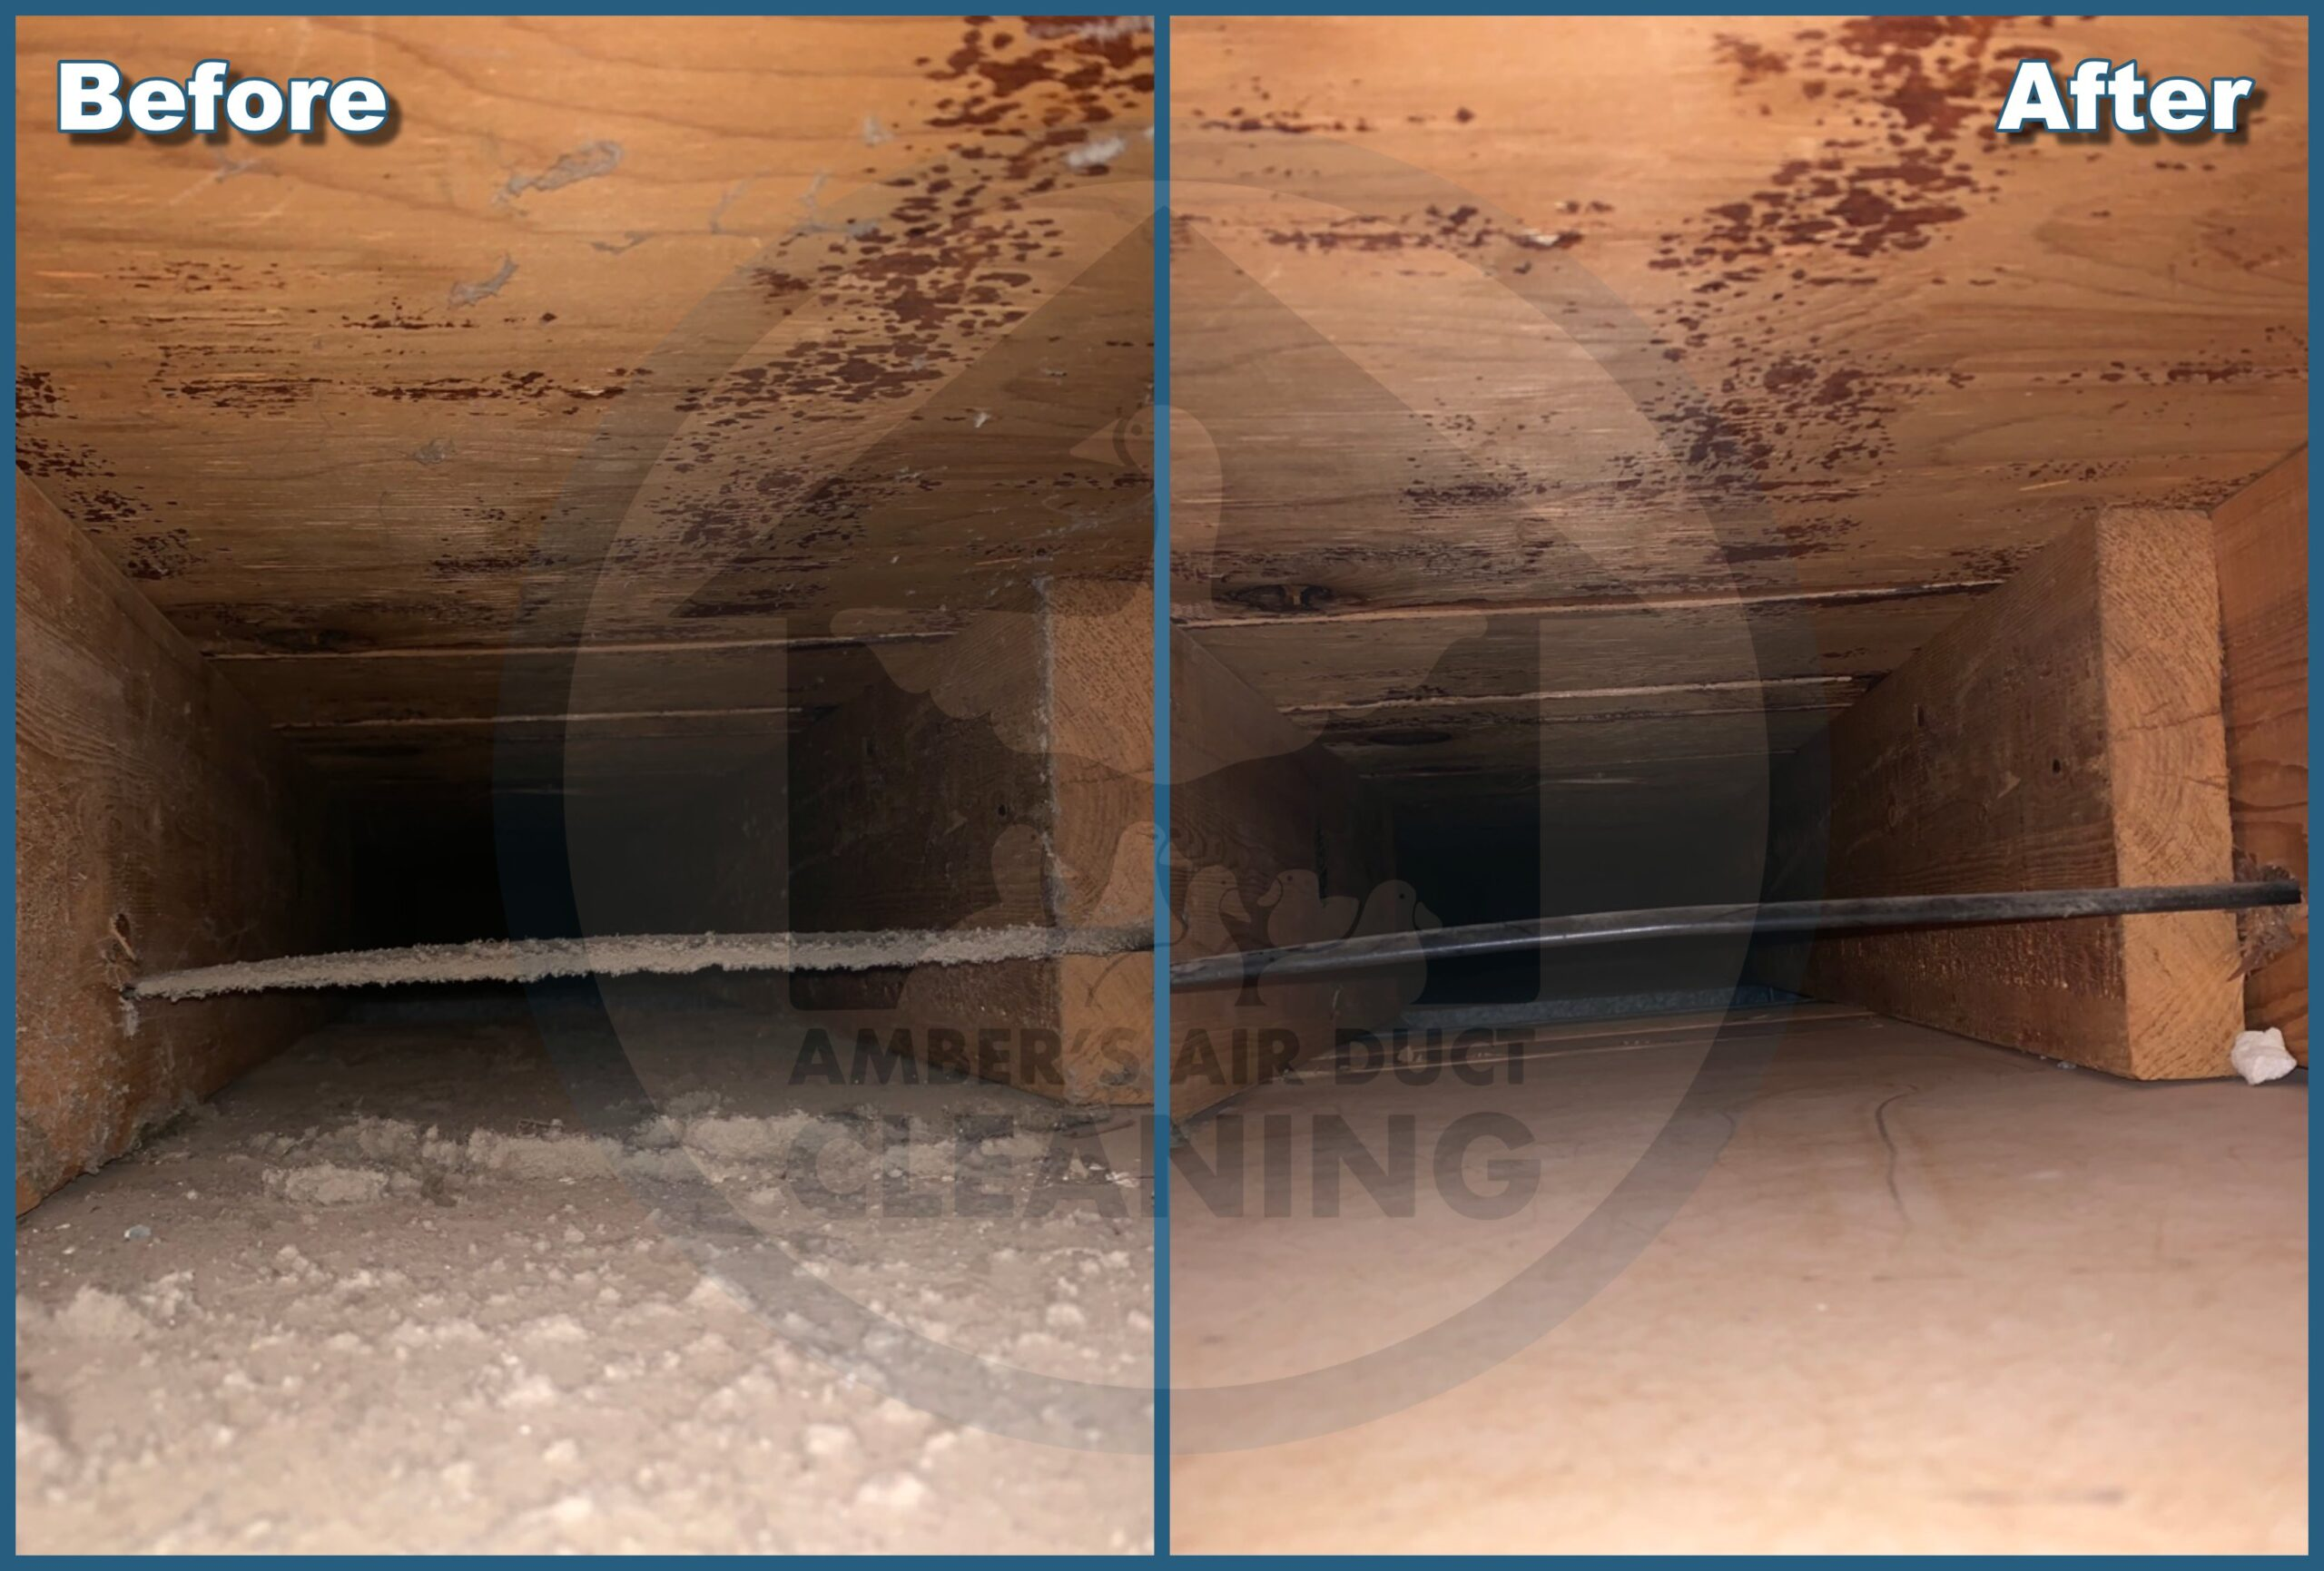 Air Duct Cleaning in Grand Ledge MI